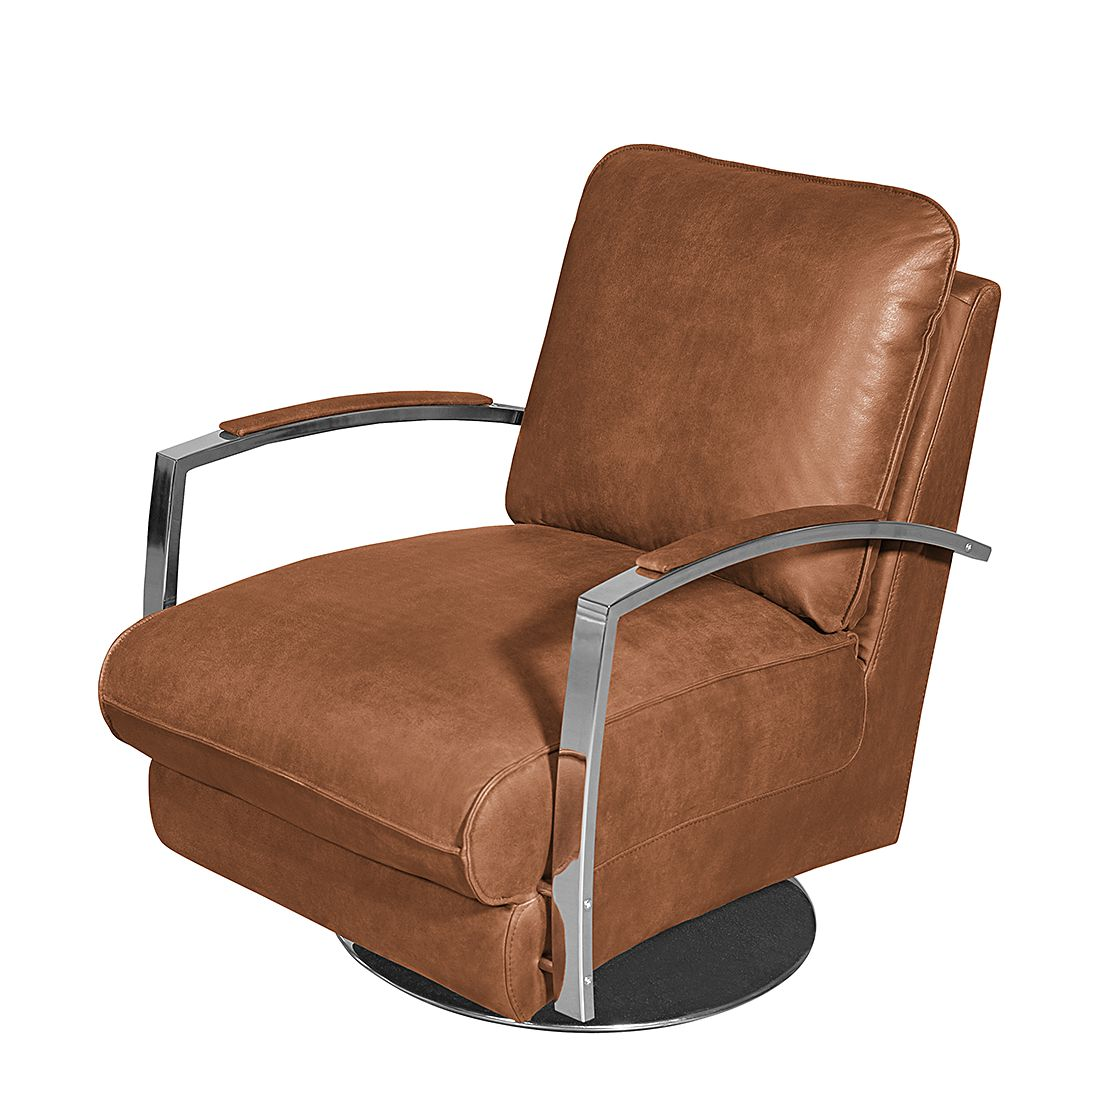 Fauteuil Marques II